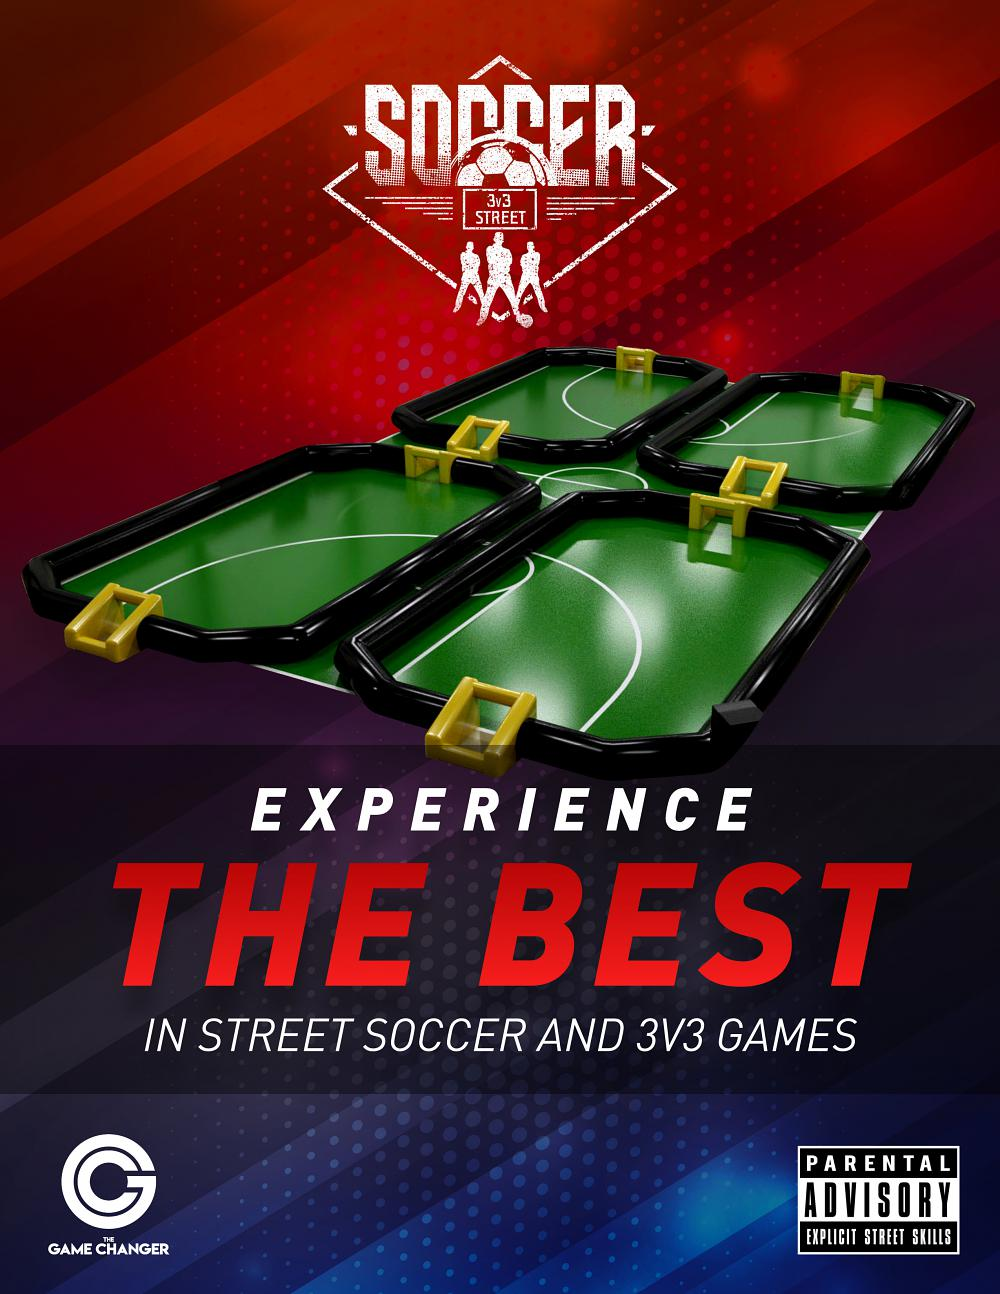 Street Soccer PLAY Session (Session 9)